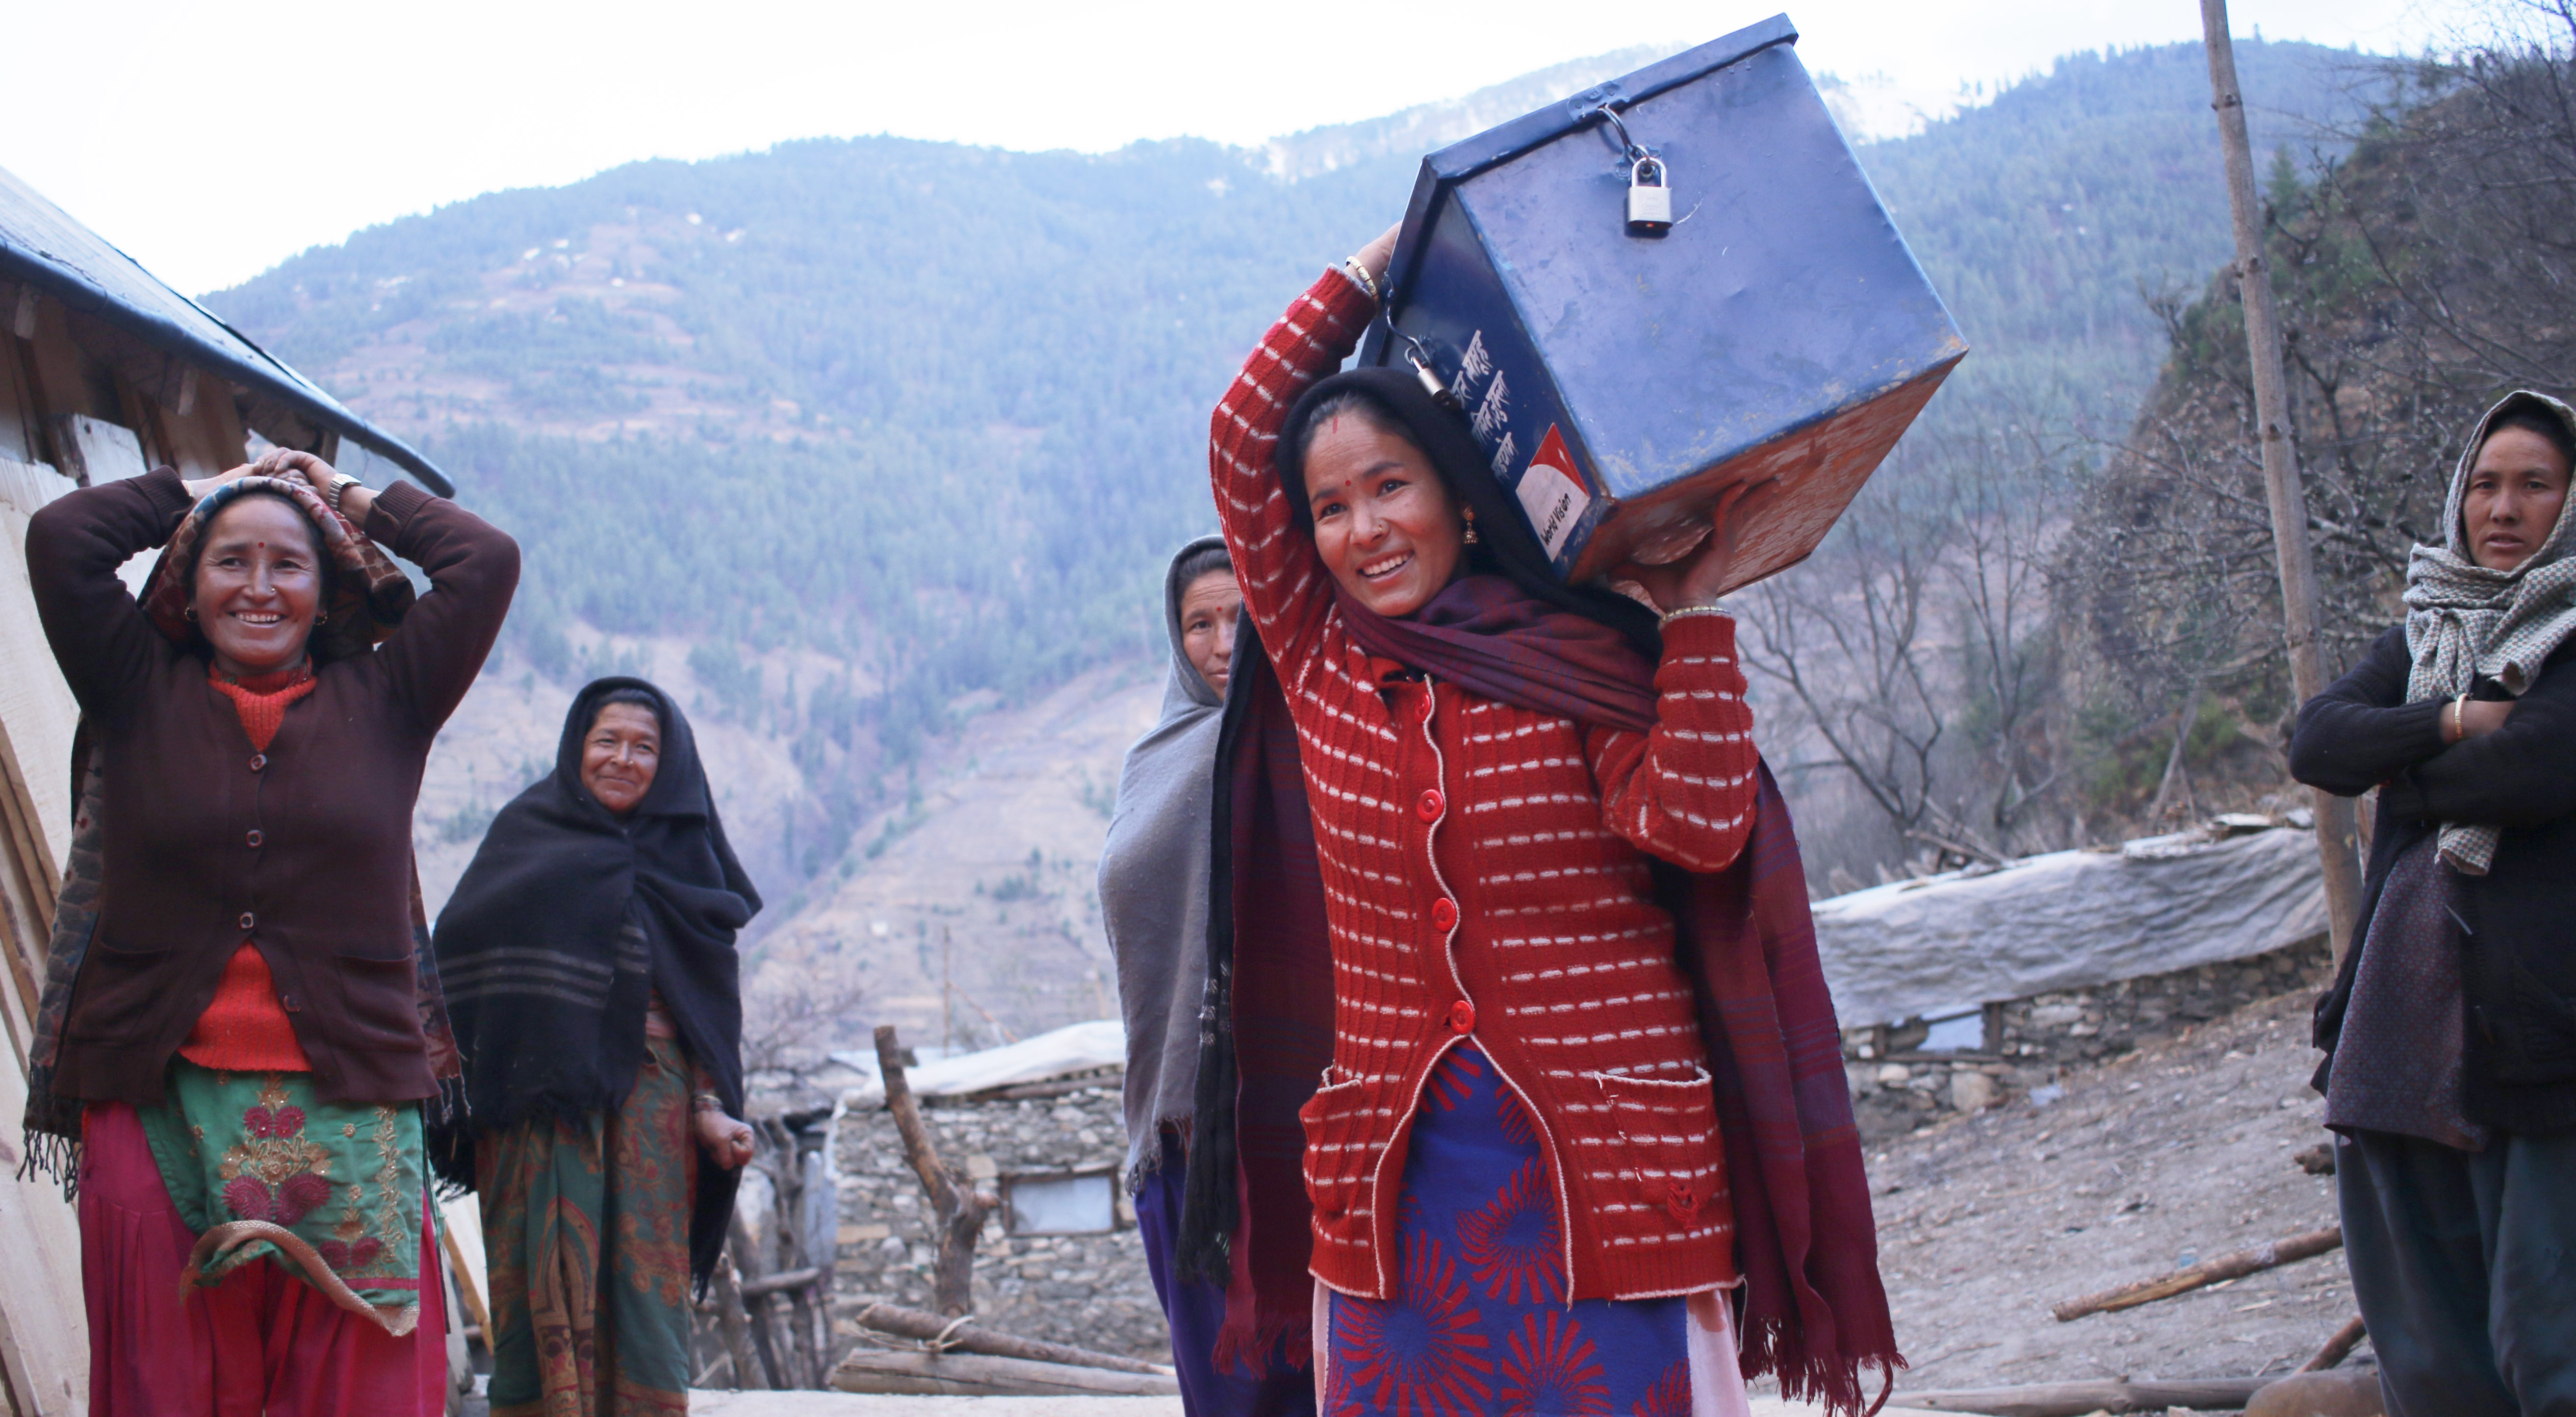 Carrying the savings box